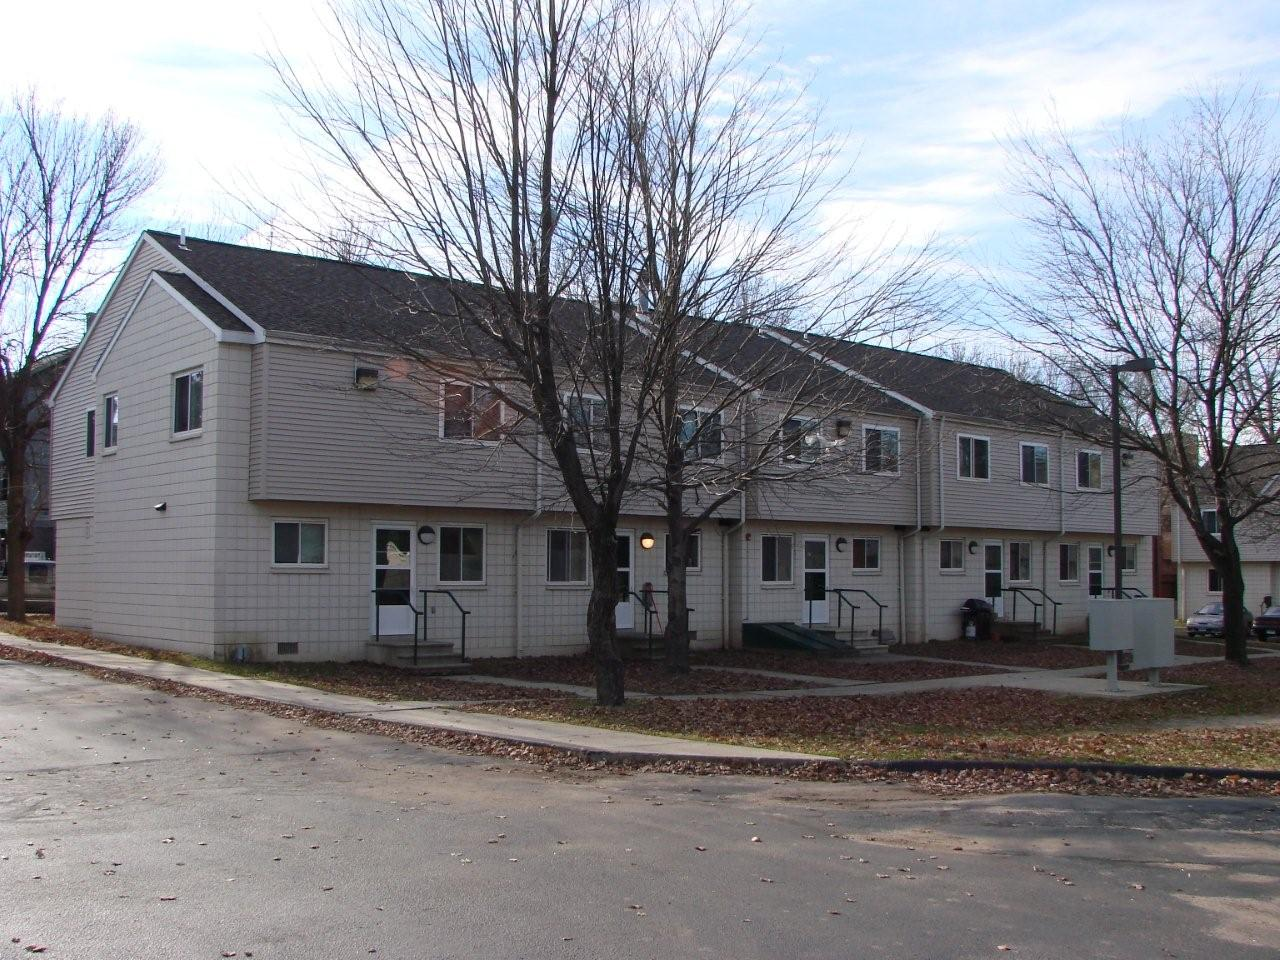 Image of Austin Rd and S End Turnky in Waterbury, Connecticut